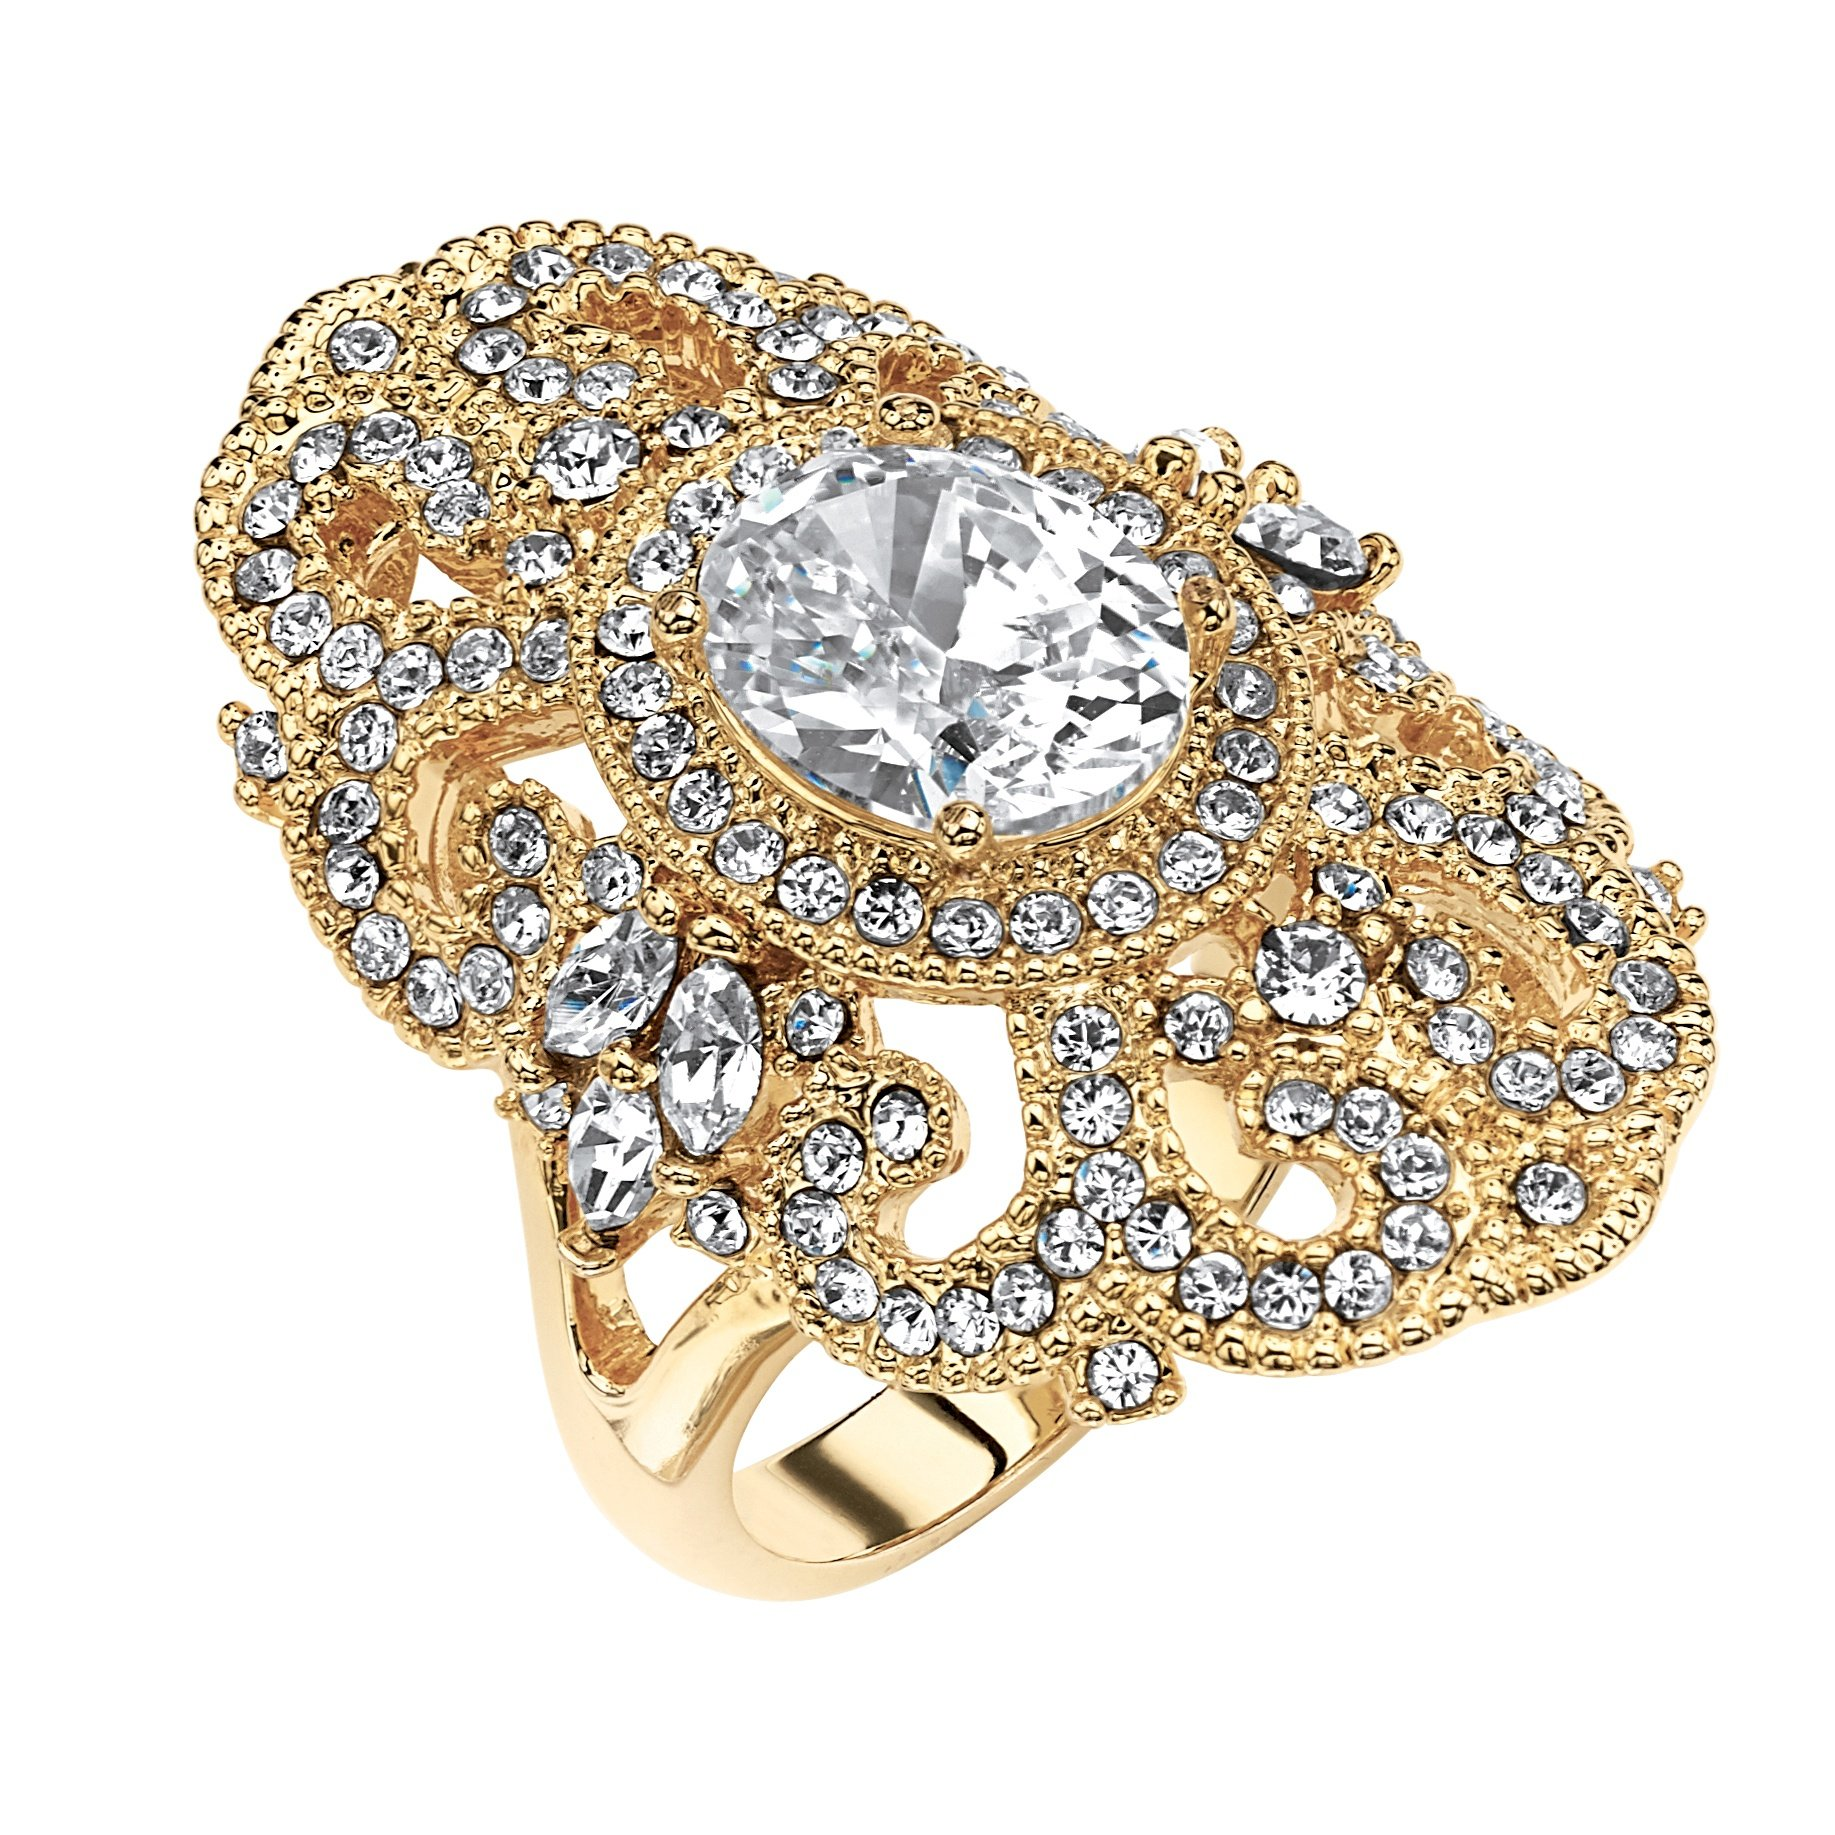 Palm Beach Jewelry White Cubic Zirconia 14k Gold-Plated Vintage-Style Scroll Cocktail Ring Size 6